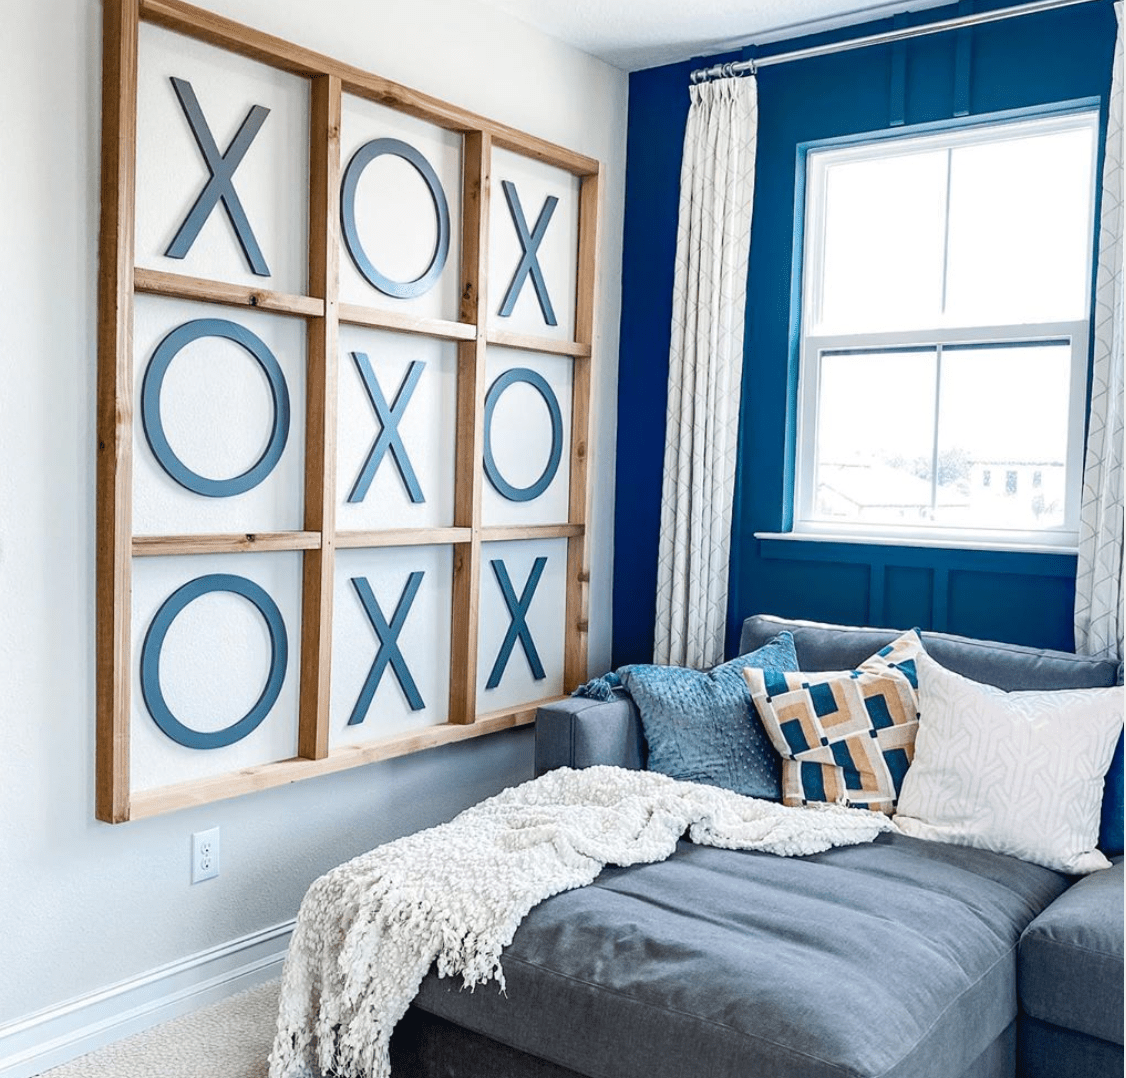 Living room with navy blue wall